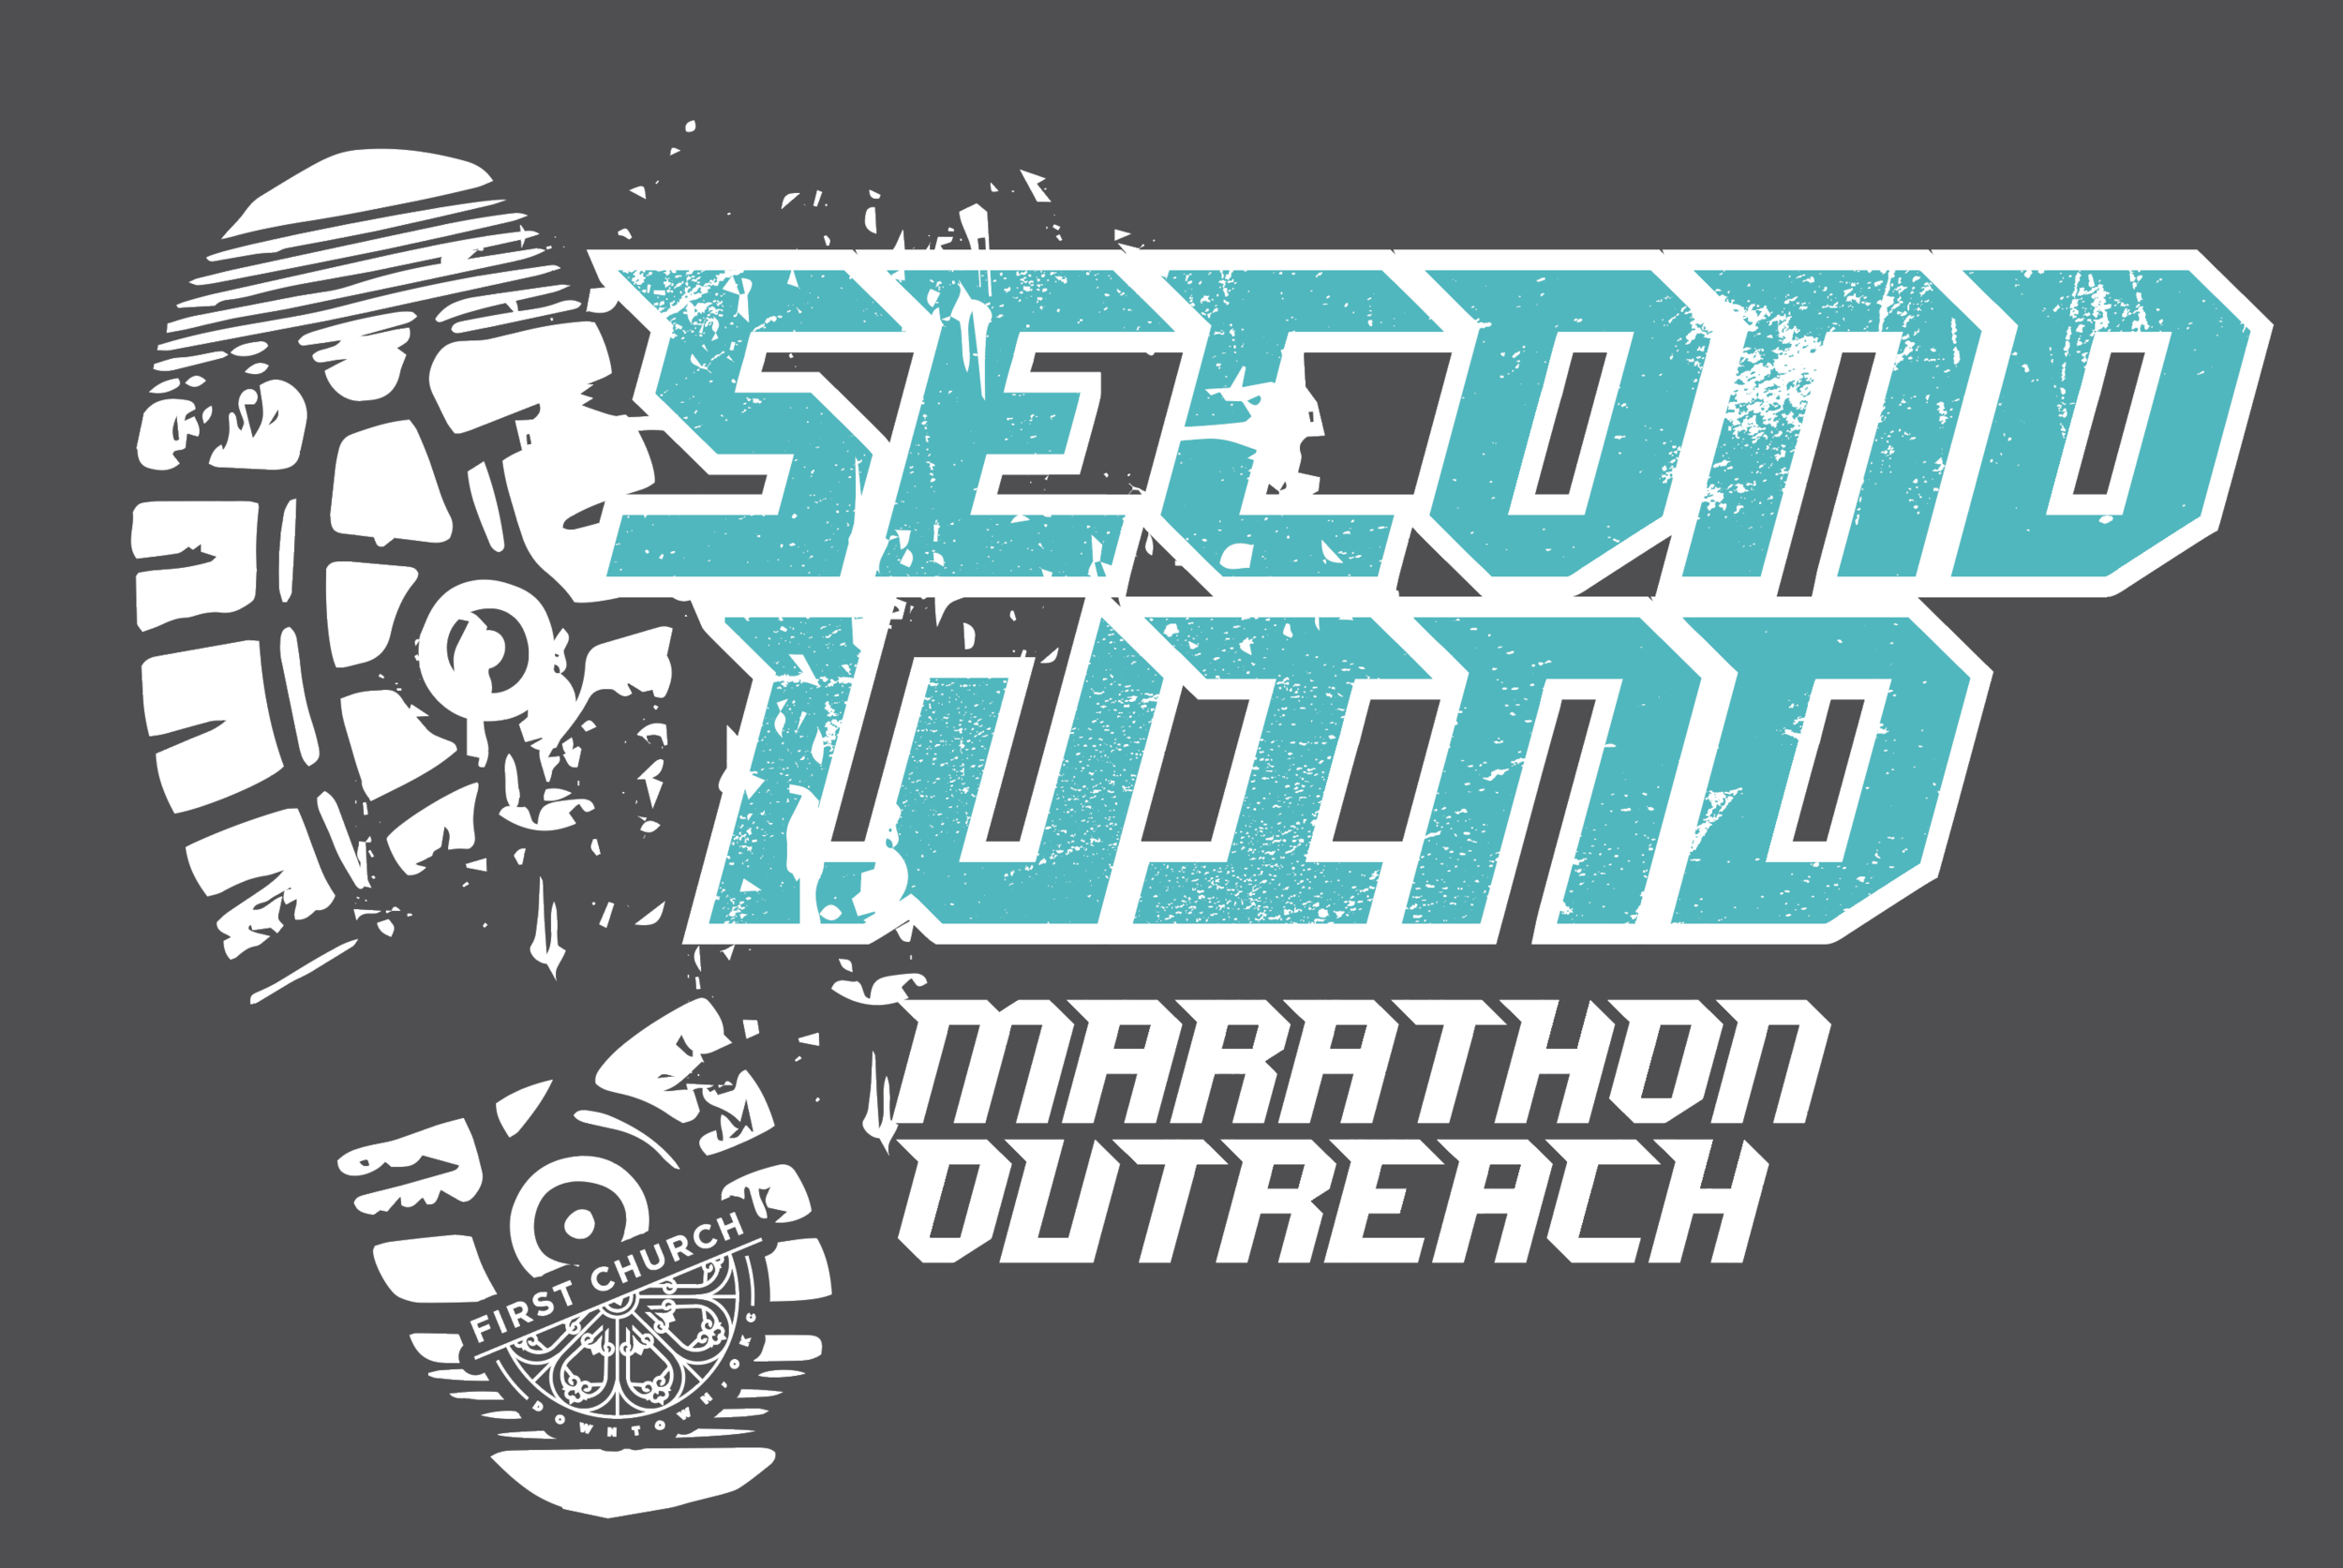 The marathon sign-up table will be open through March 17th! So, if you want to sign-up you must do so by March 17th. You will have an opportunity to sign-up to help with the pancake breakfast and the expo booth. Thank you for your support of our Second Wind ministry!